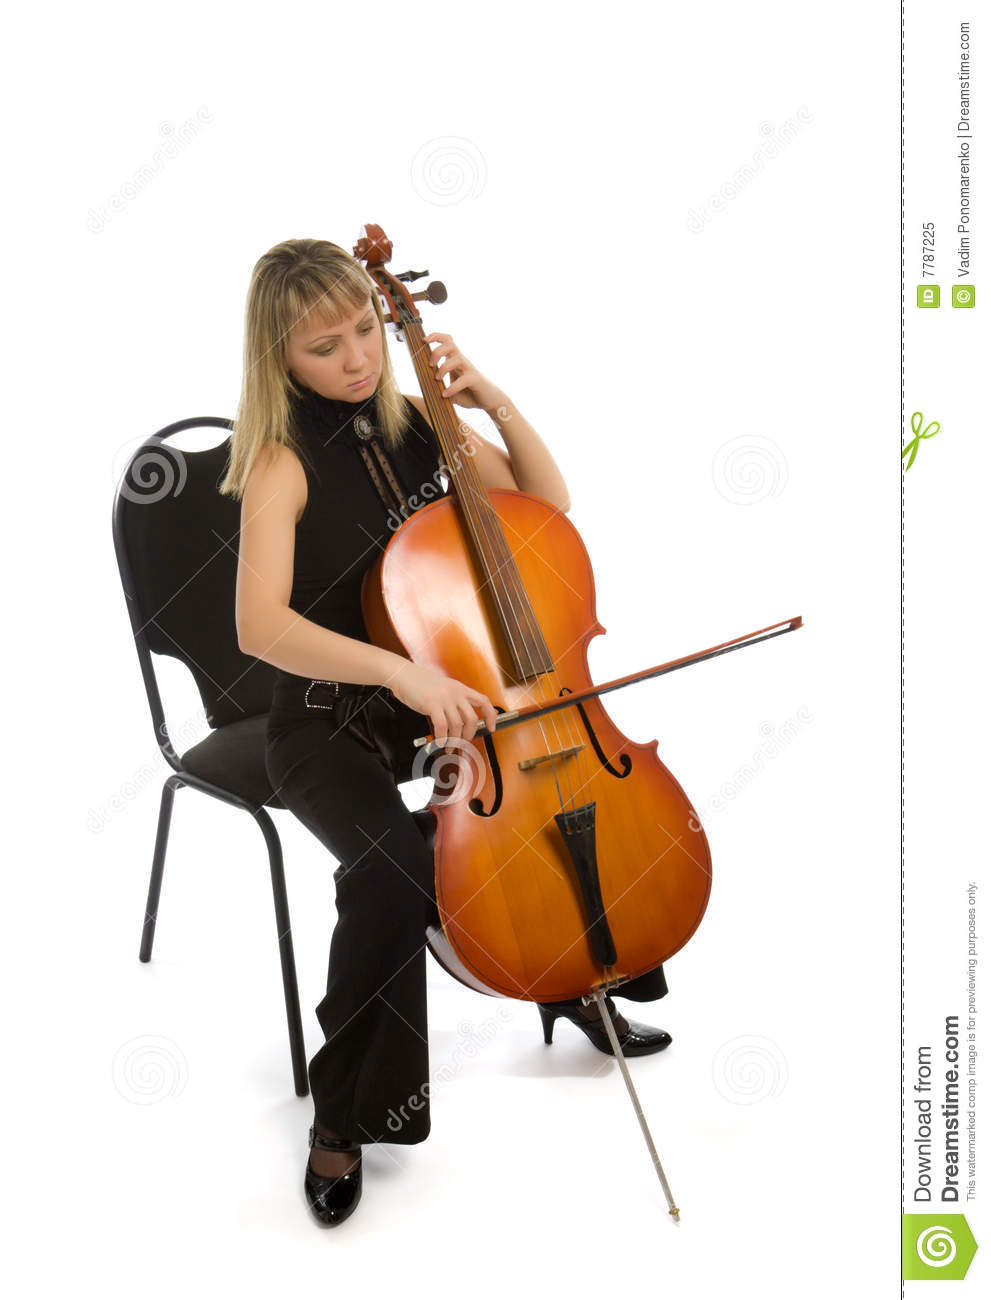 Woman cellist stock image. Image of theatrical, playing ...